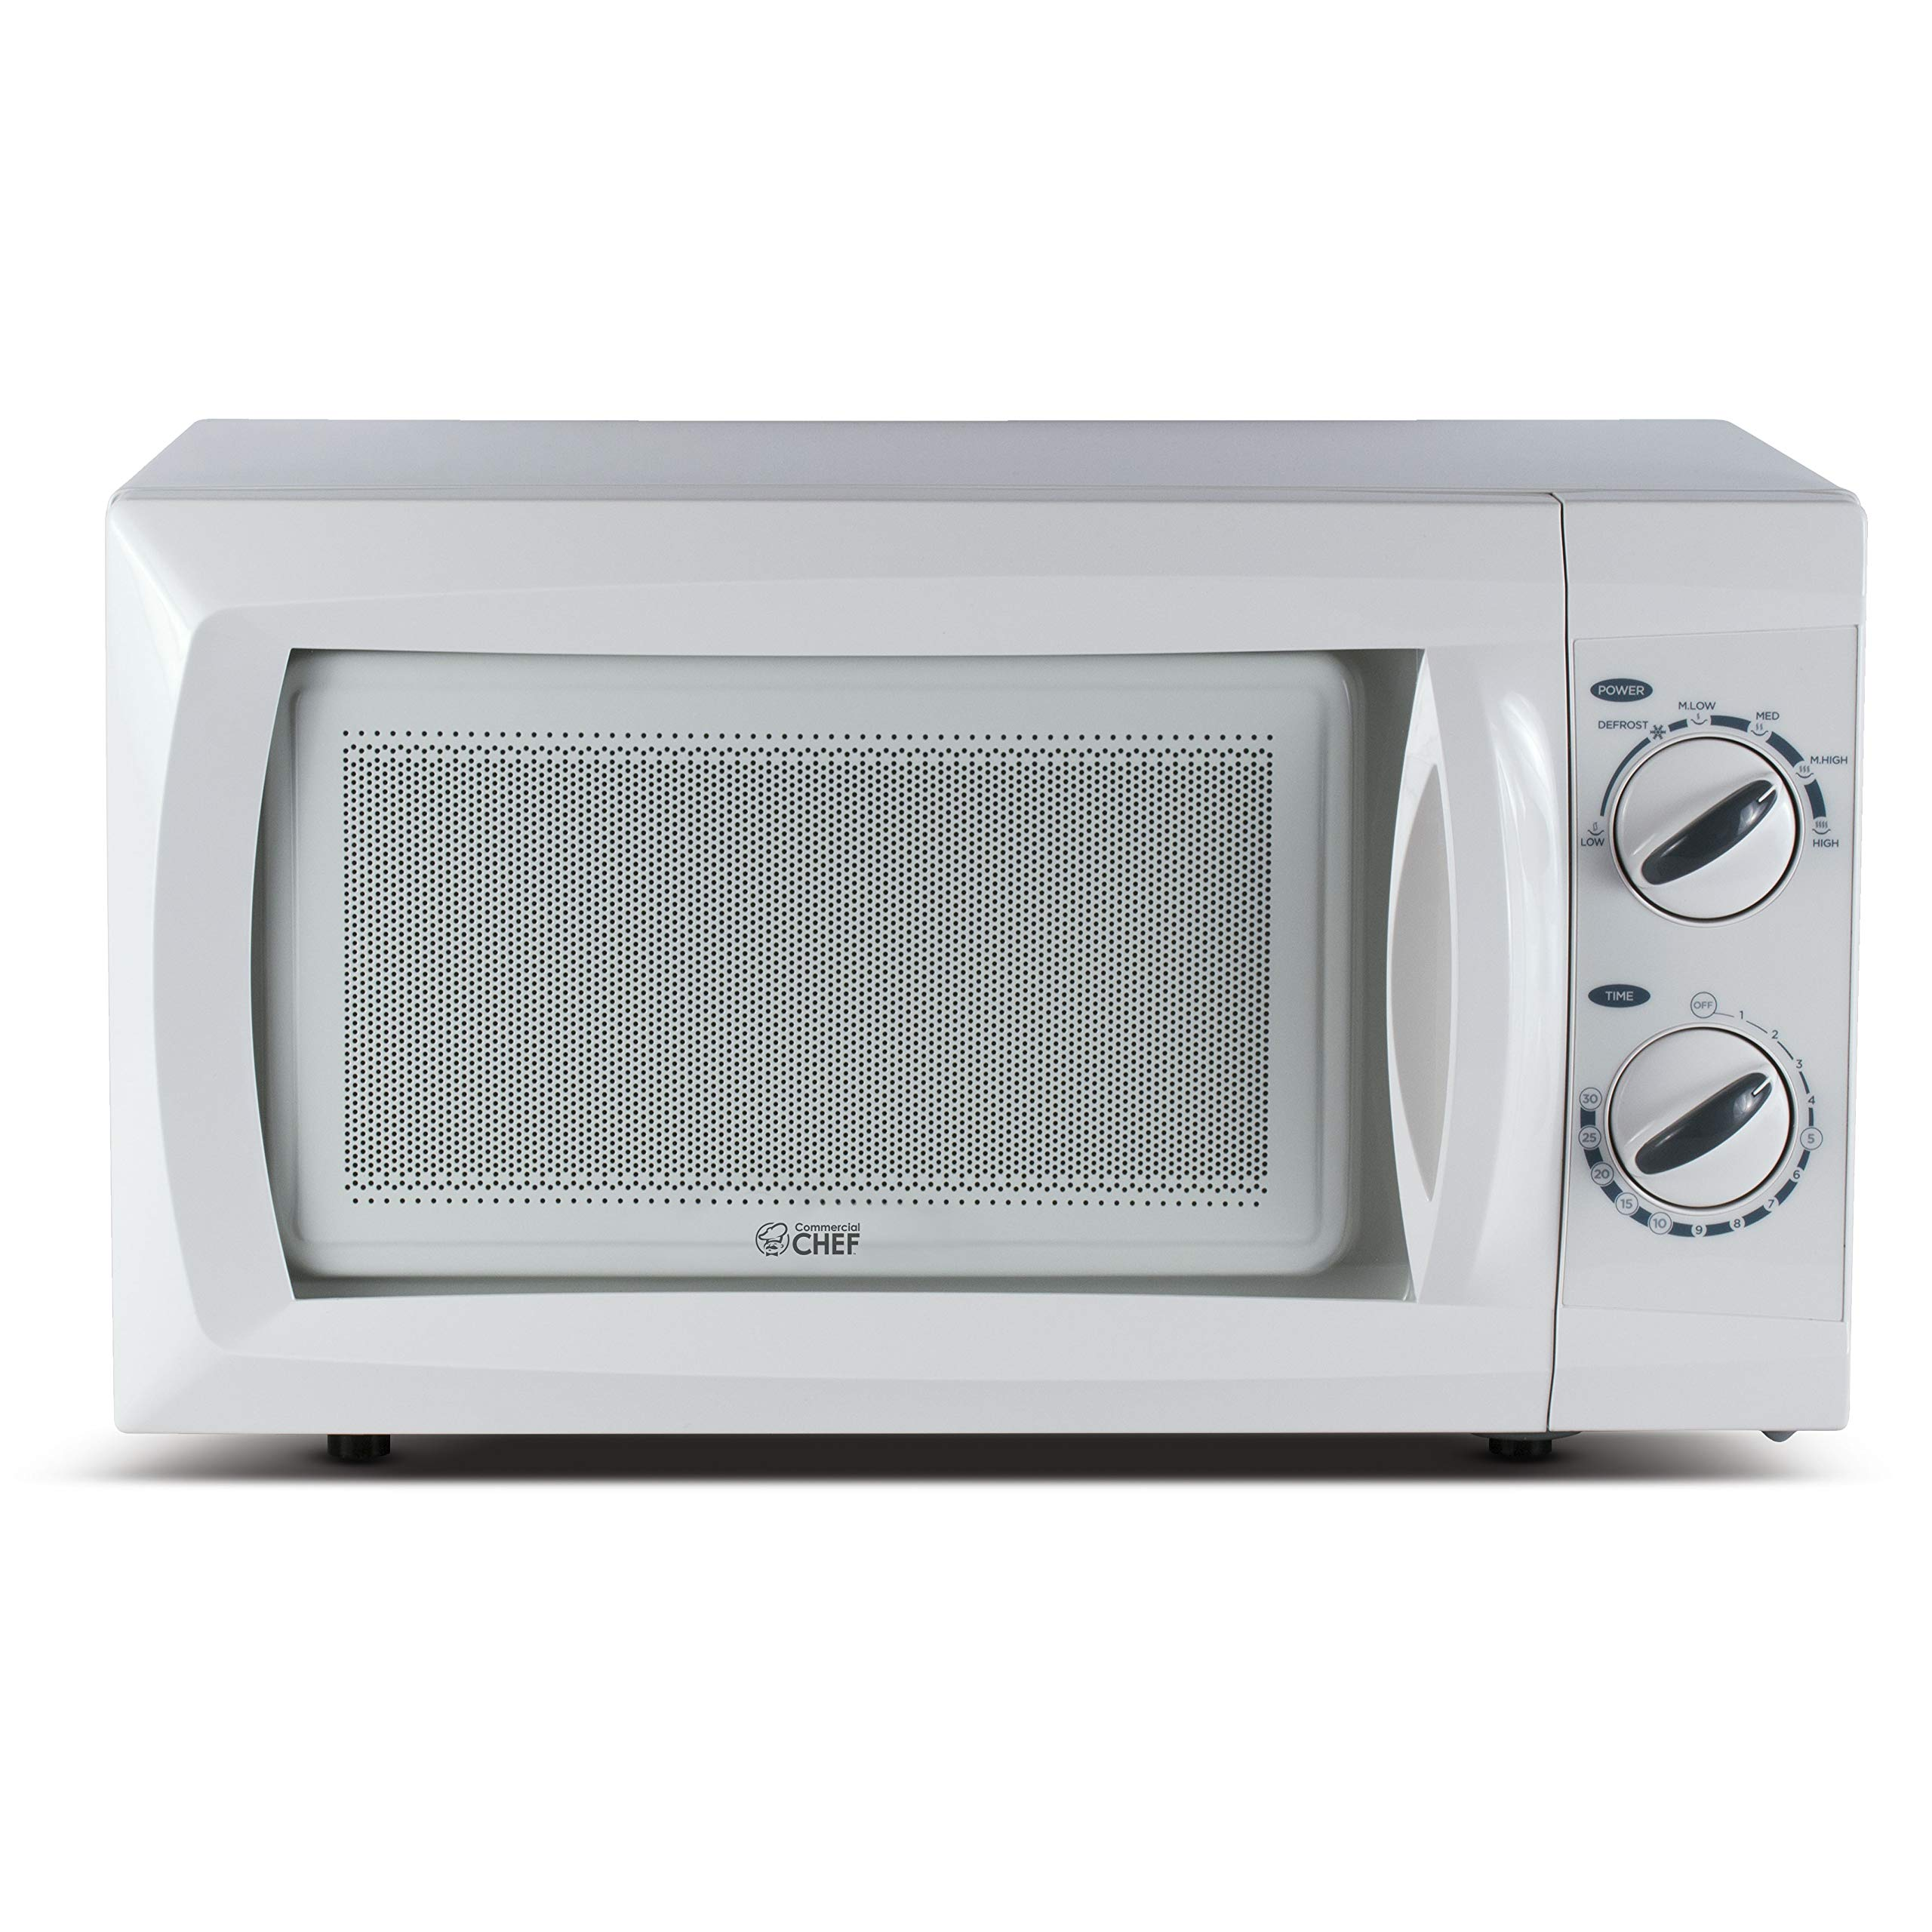 Commercial Chef Counter Top Rotary Microwave Oven 0.6 Cubic Feet, 600 Watt, White, CHM660W by Commercial Chef